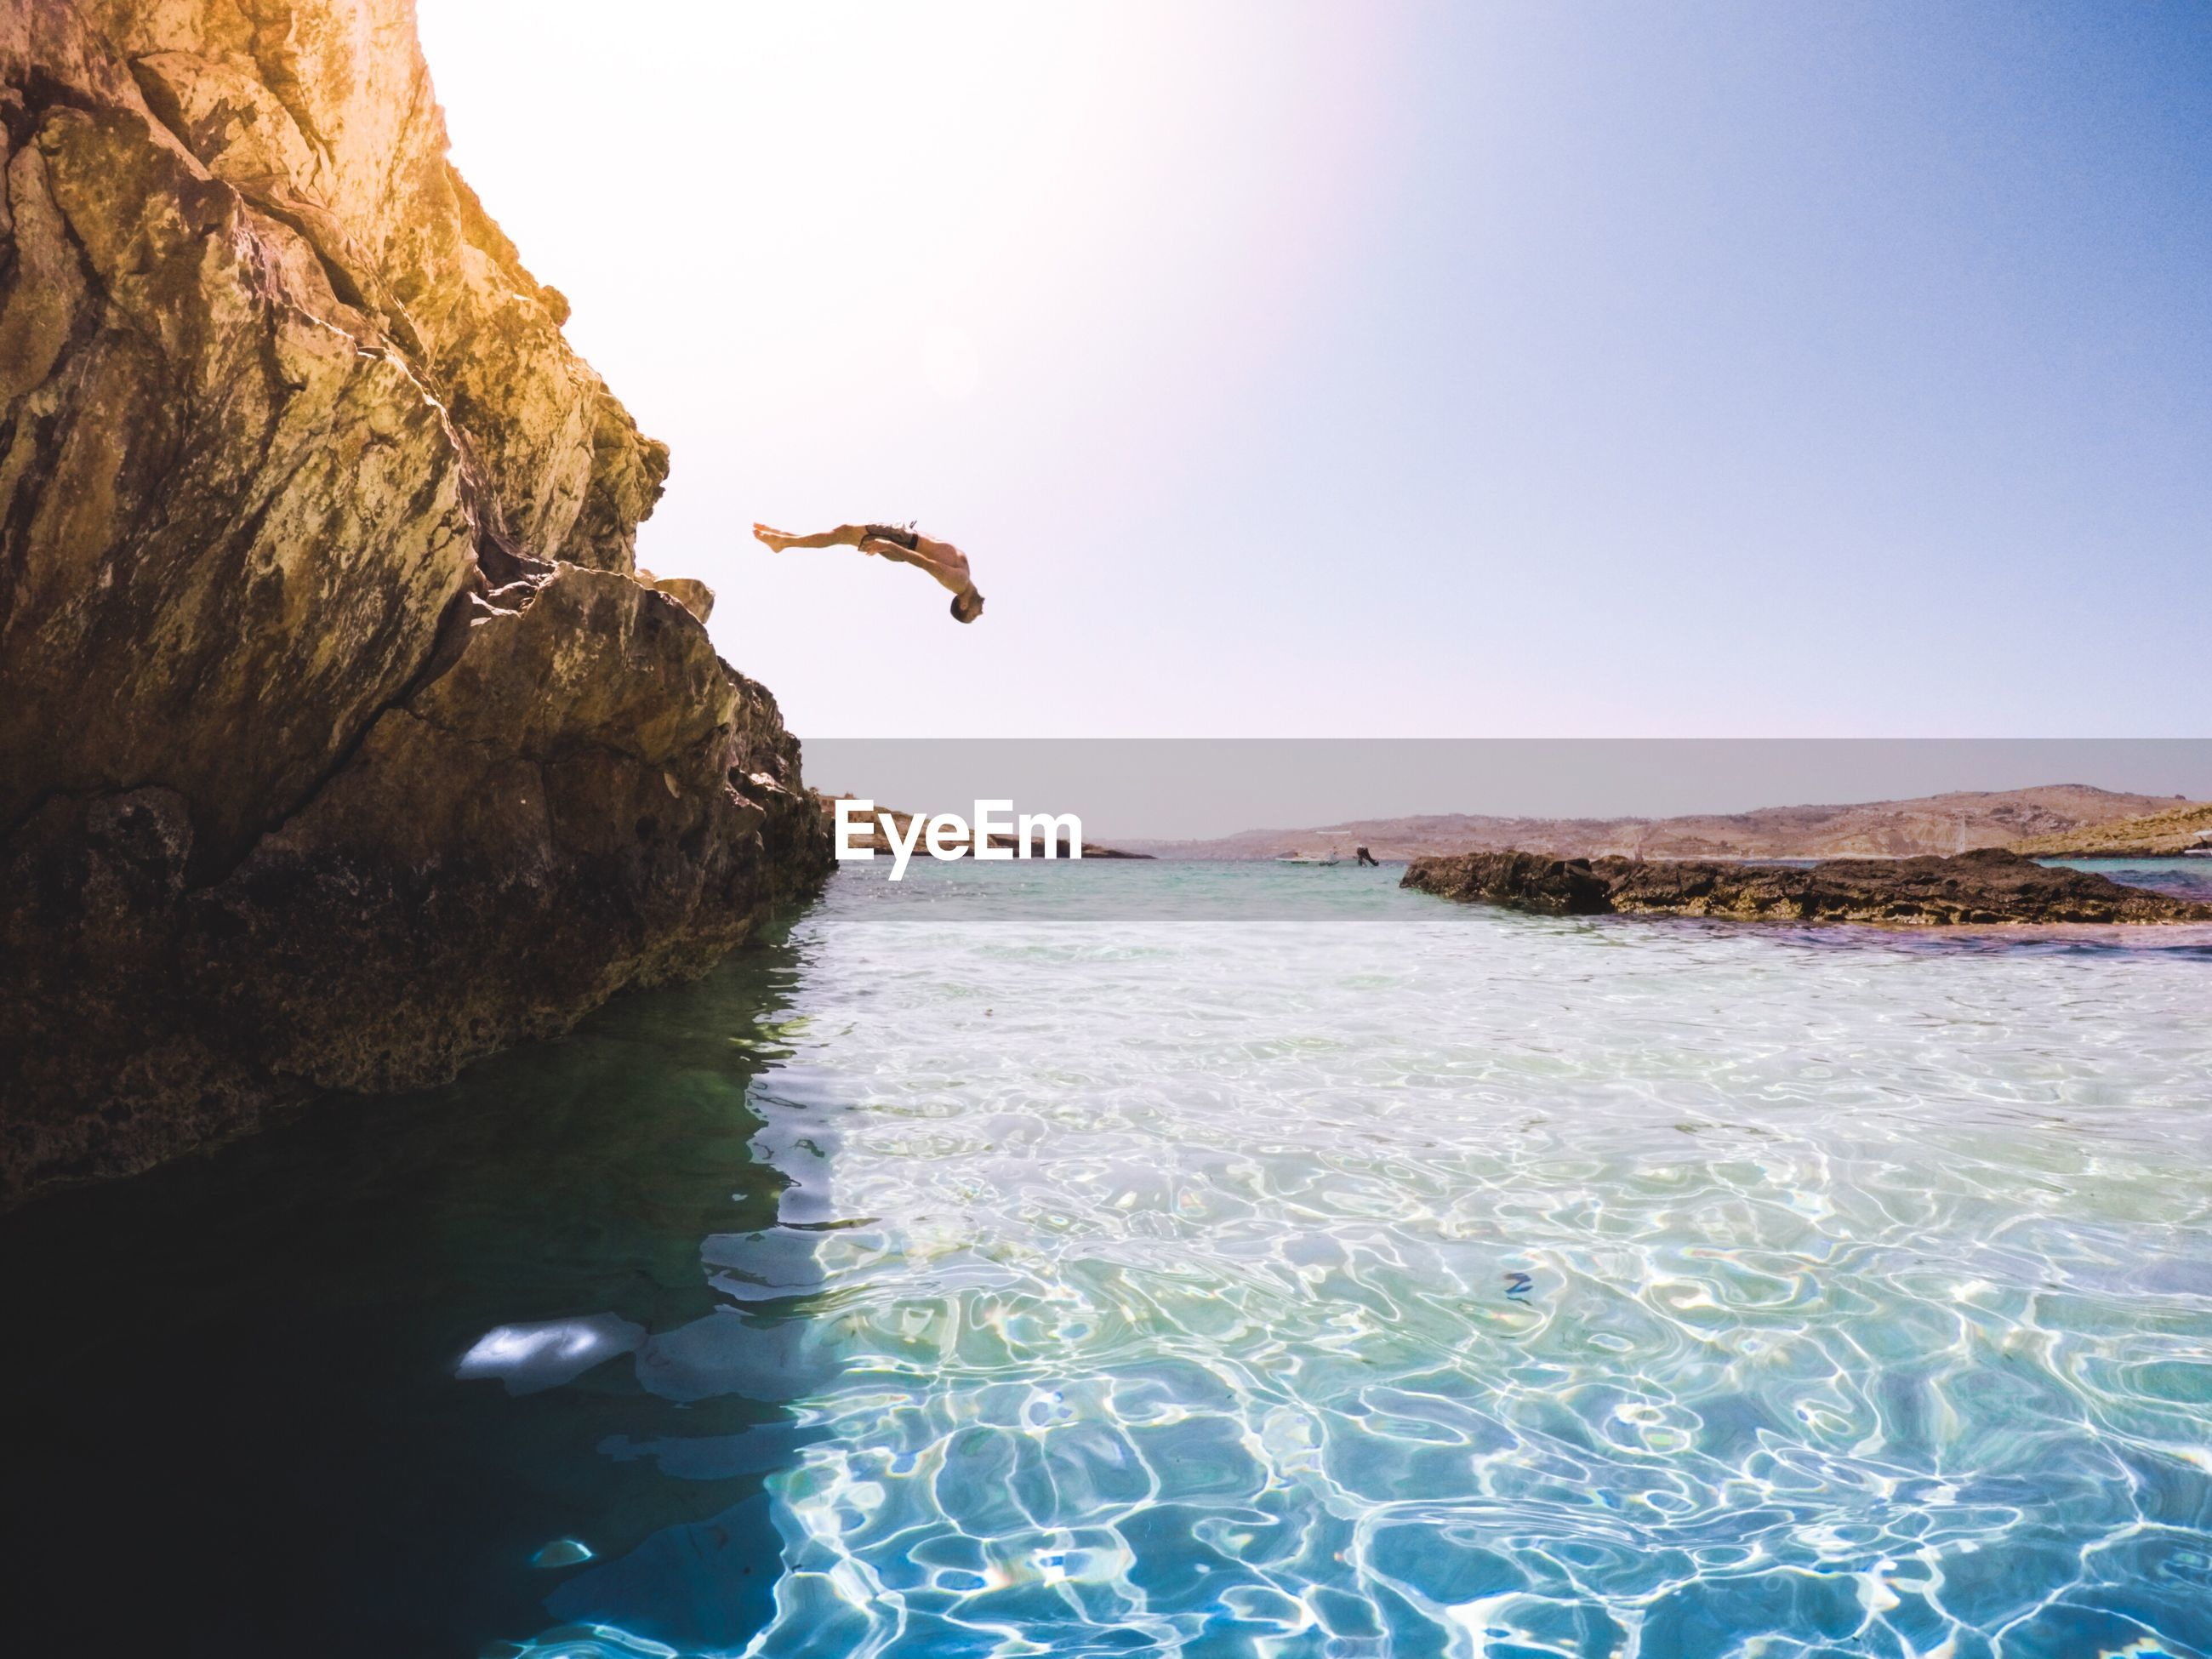 Man diving into sea from cliff against clear sky